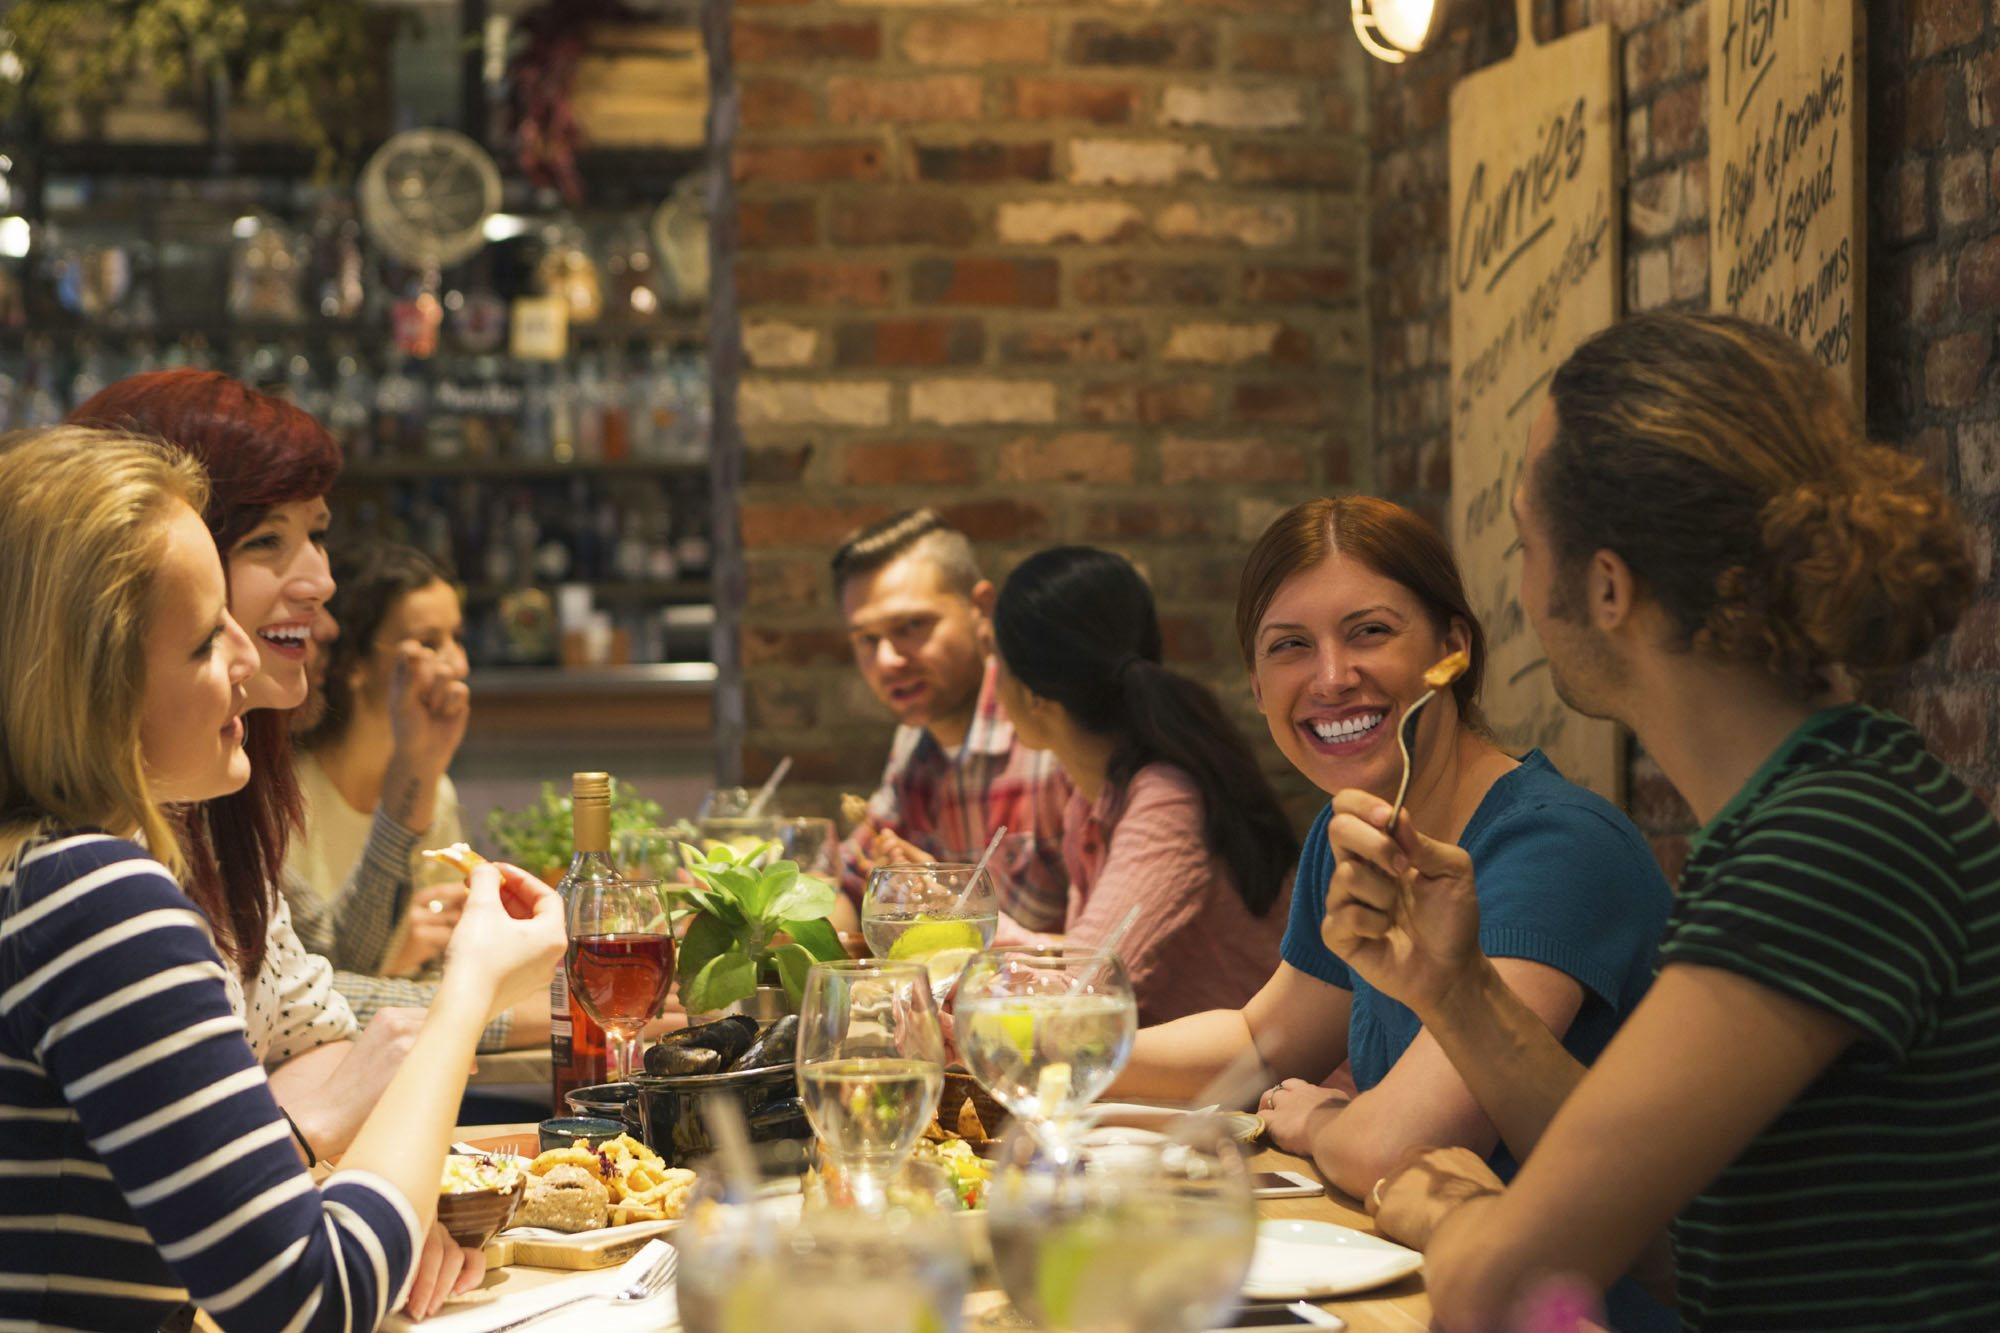 Stock image-friends dining